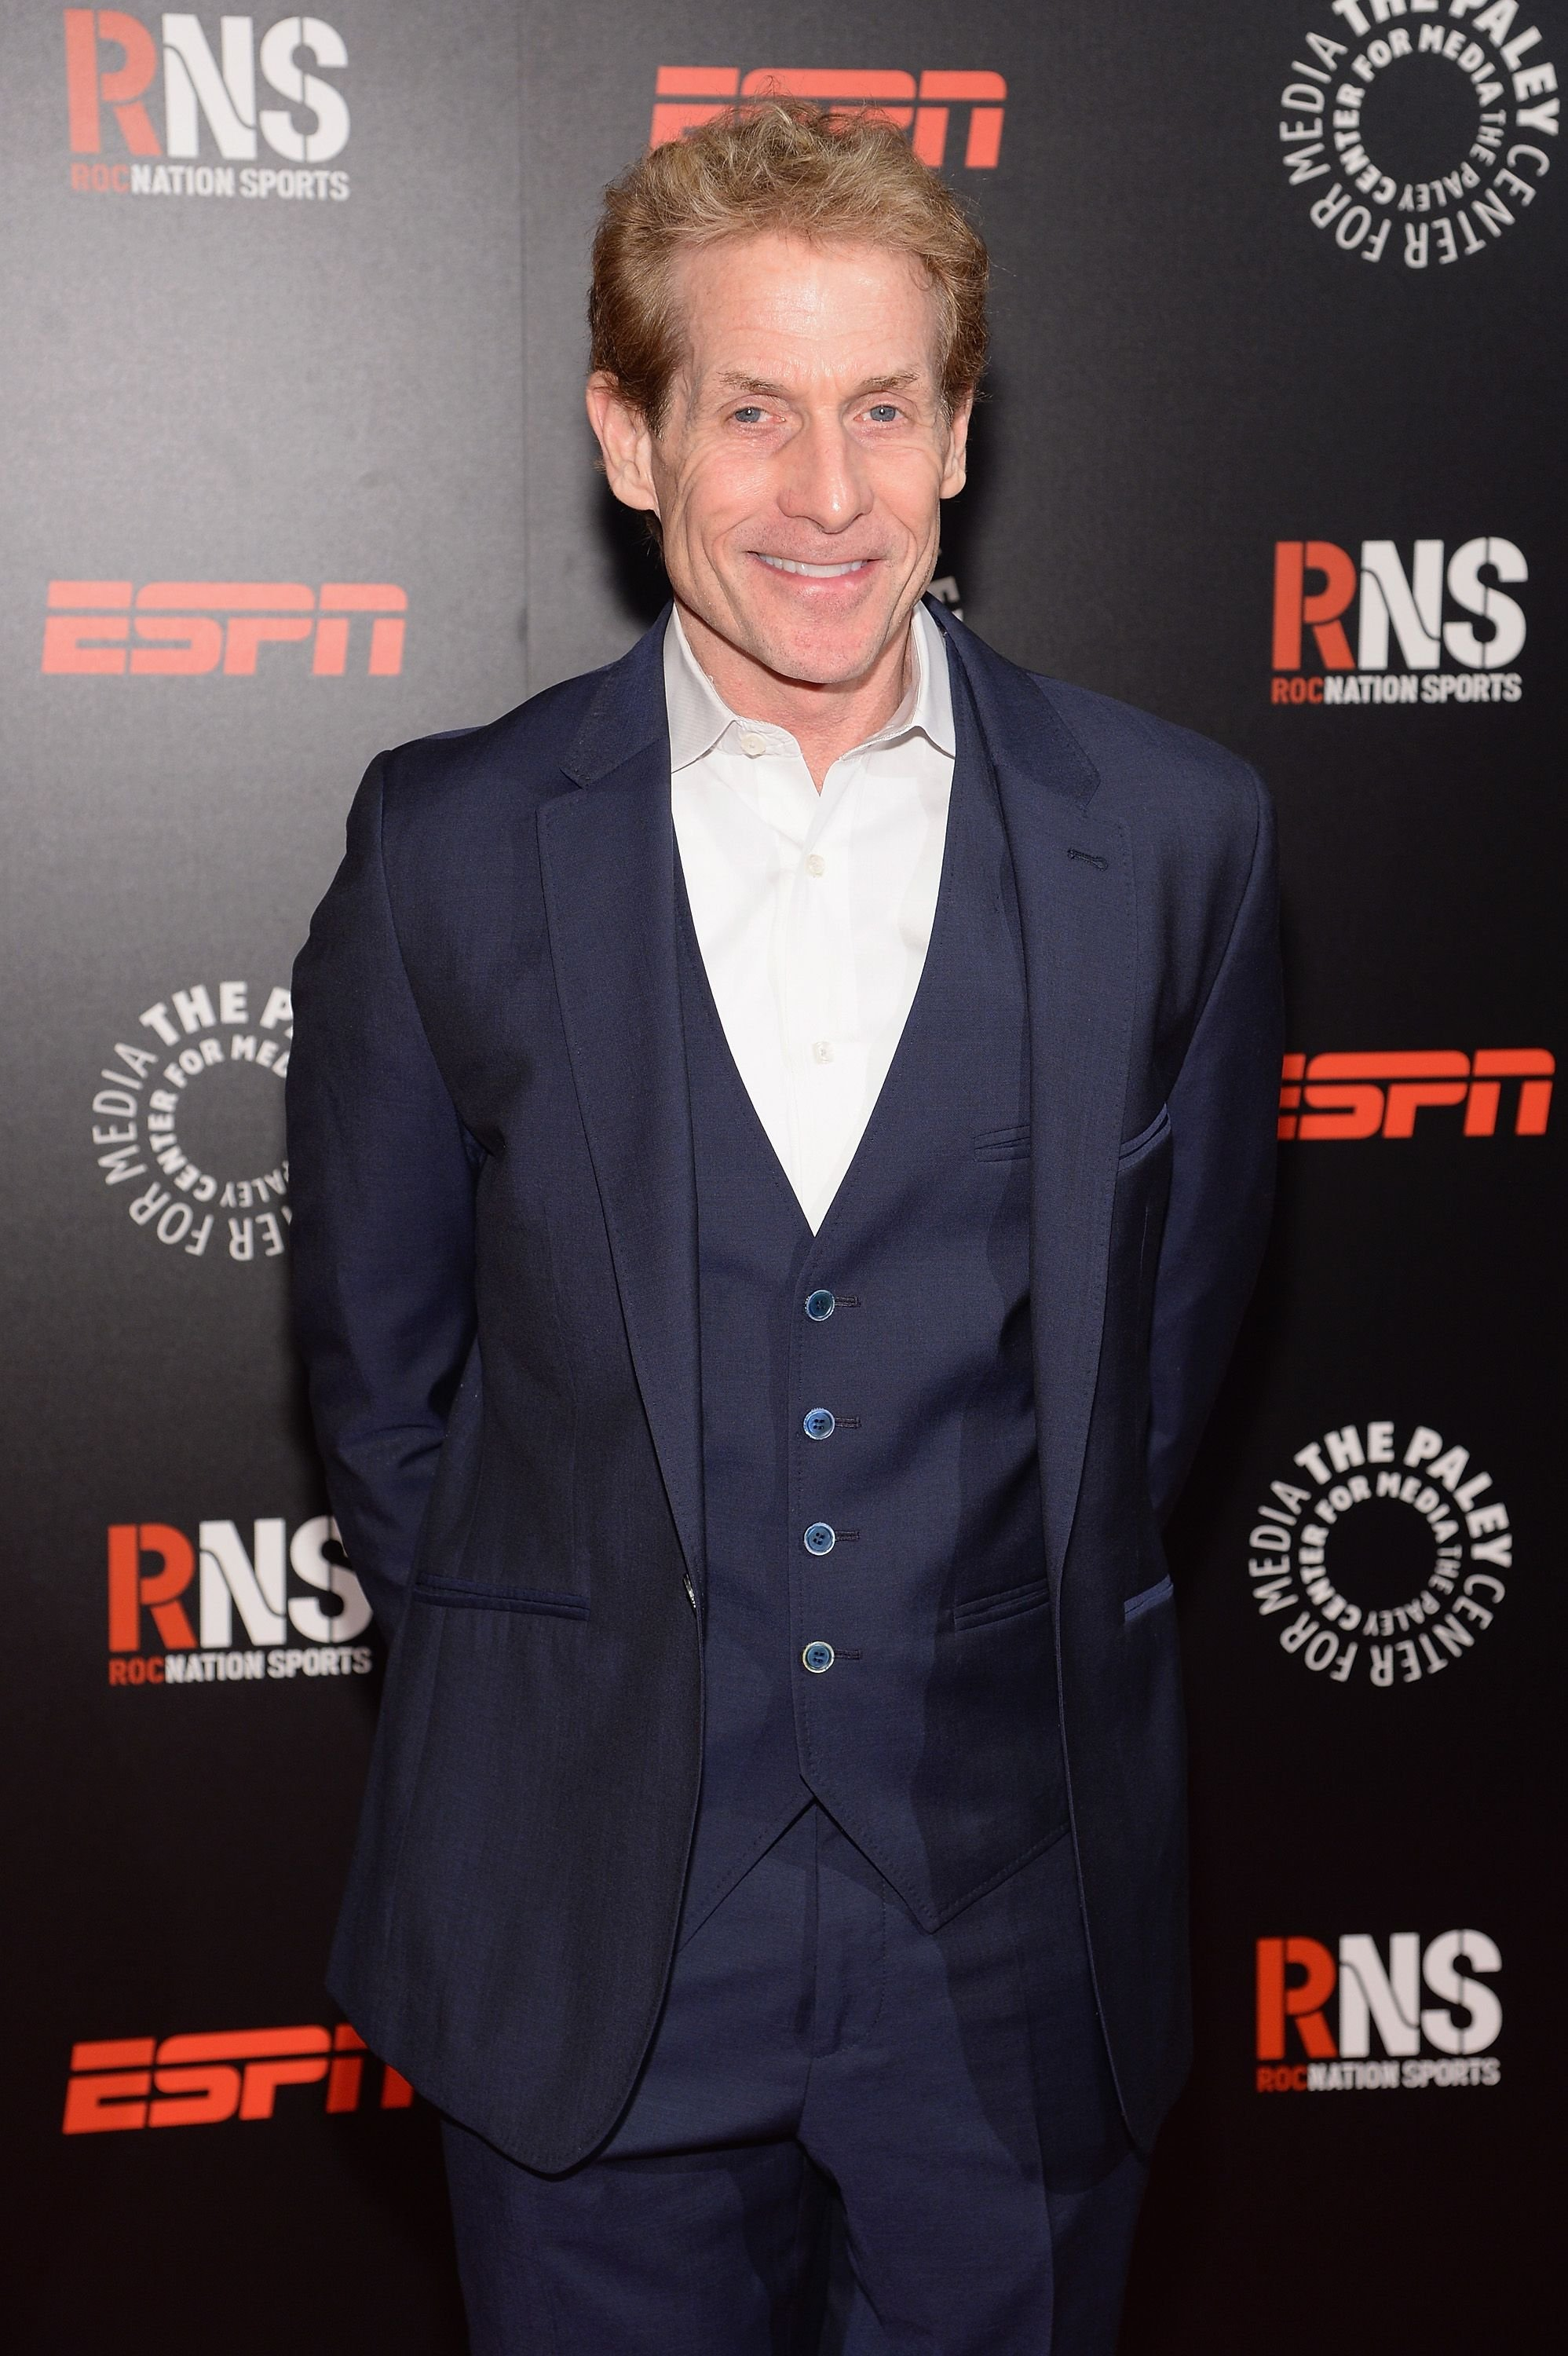 Skip Bayless at the Paley Prize Gala honoring ESPN's 35th anniversary in 2014 in New York City | Source: Getty Images